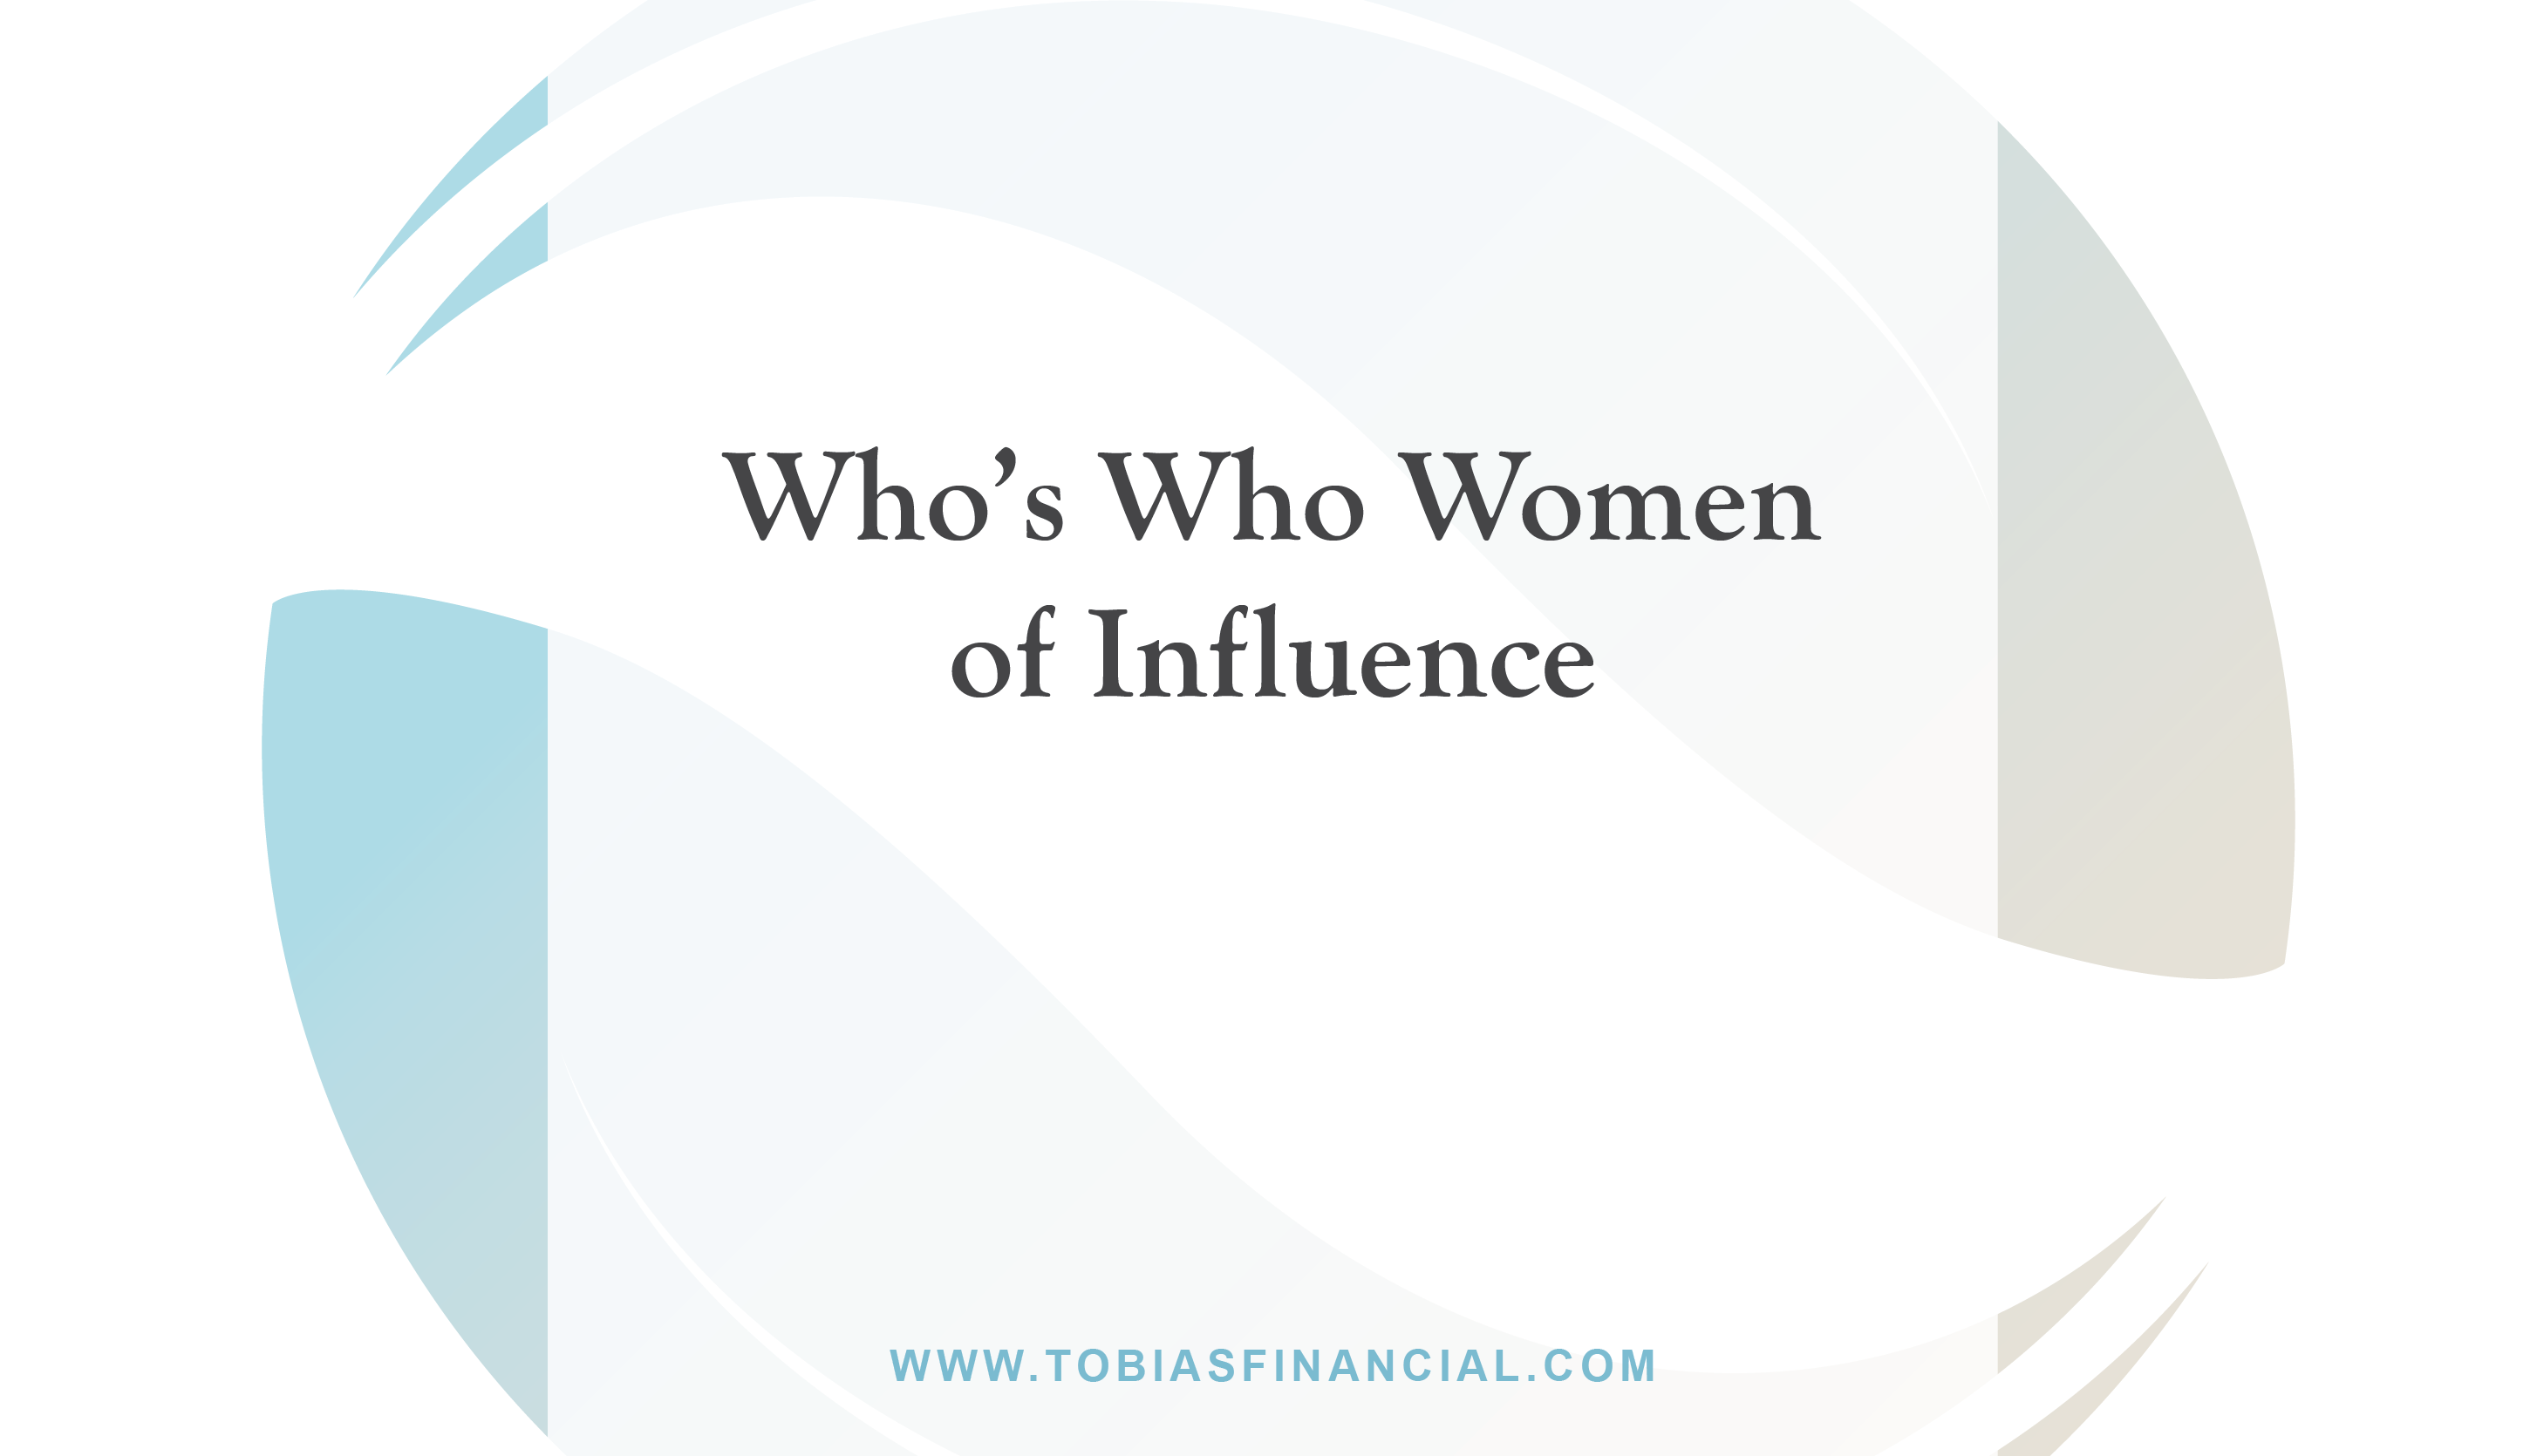 Who's Who Women of Influence